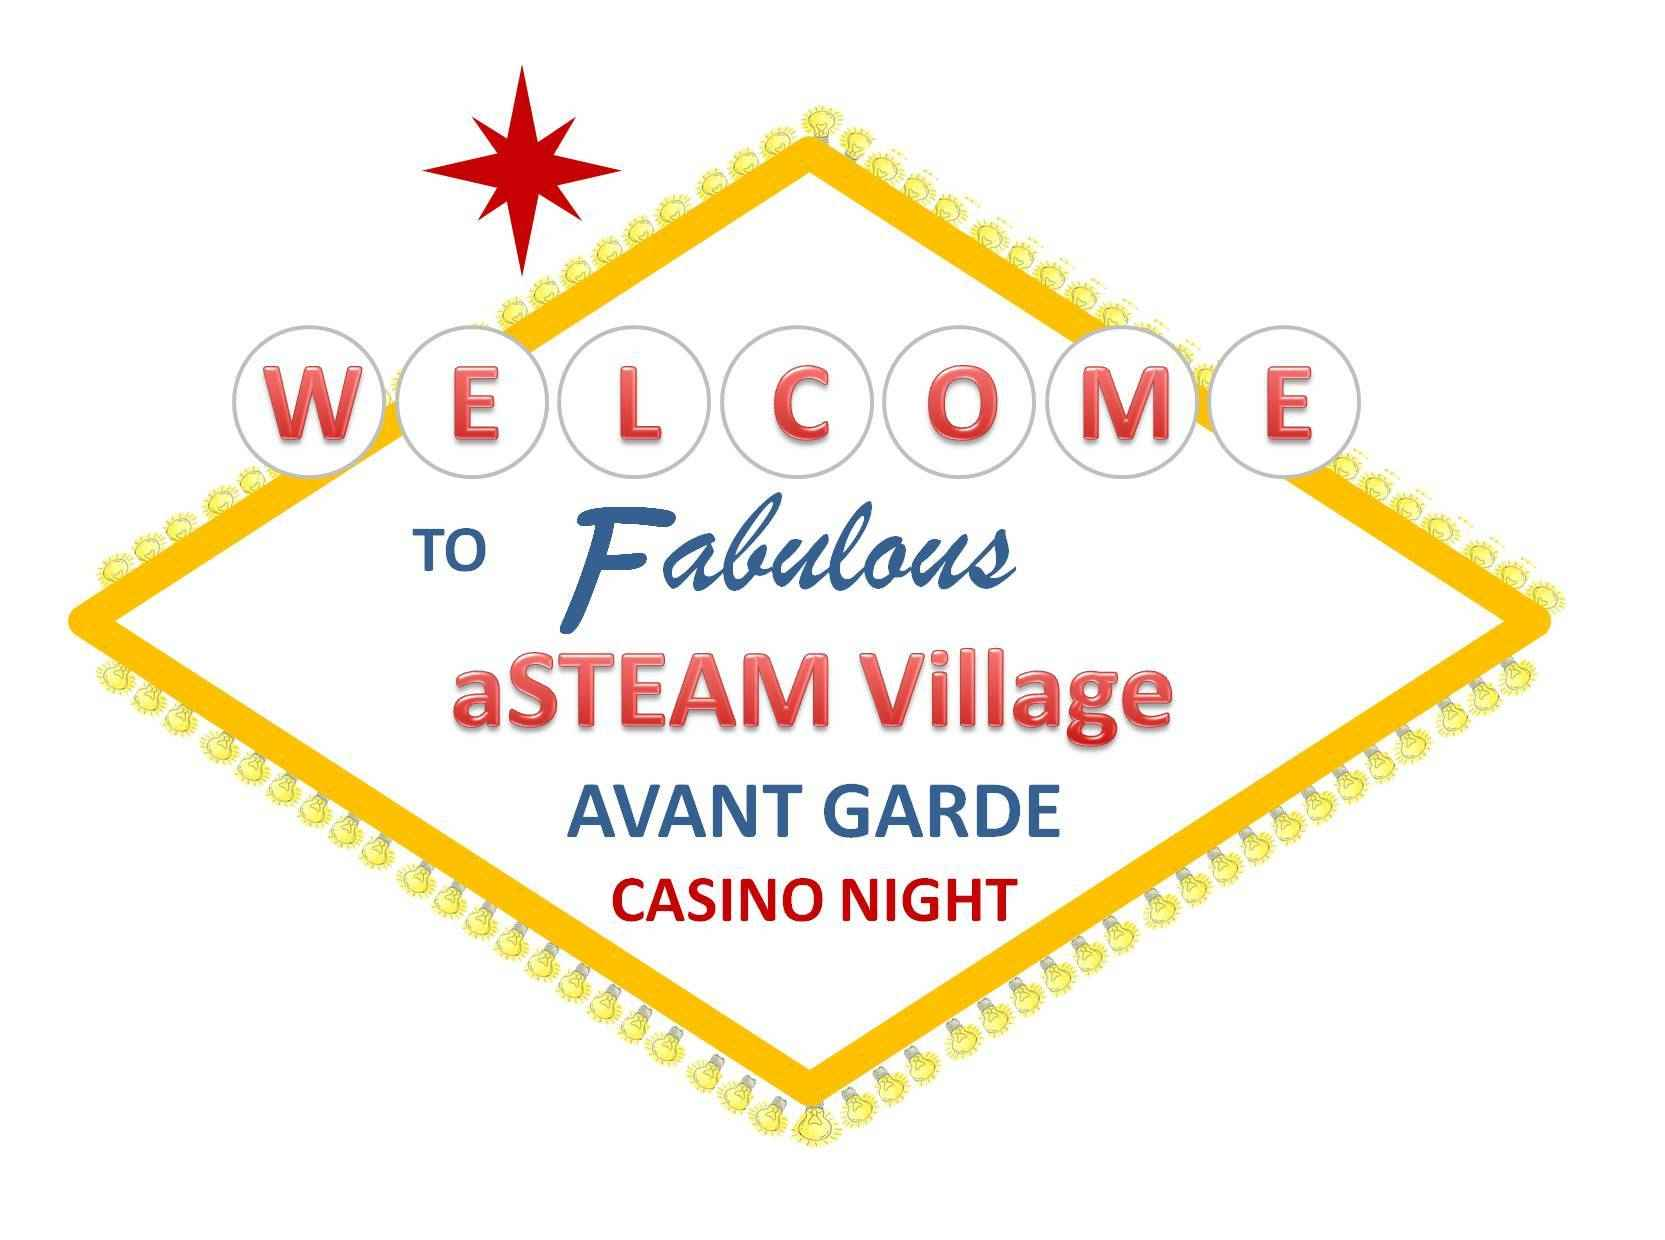 4th Annual Viva Avant Garde Casino Night Fundraiser image